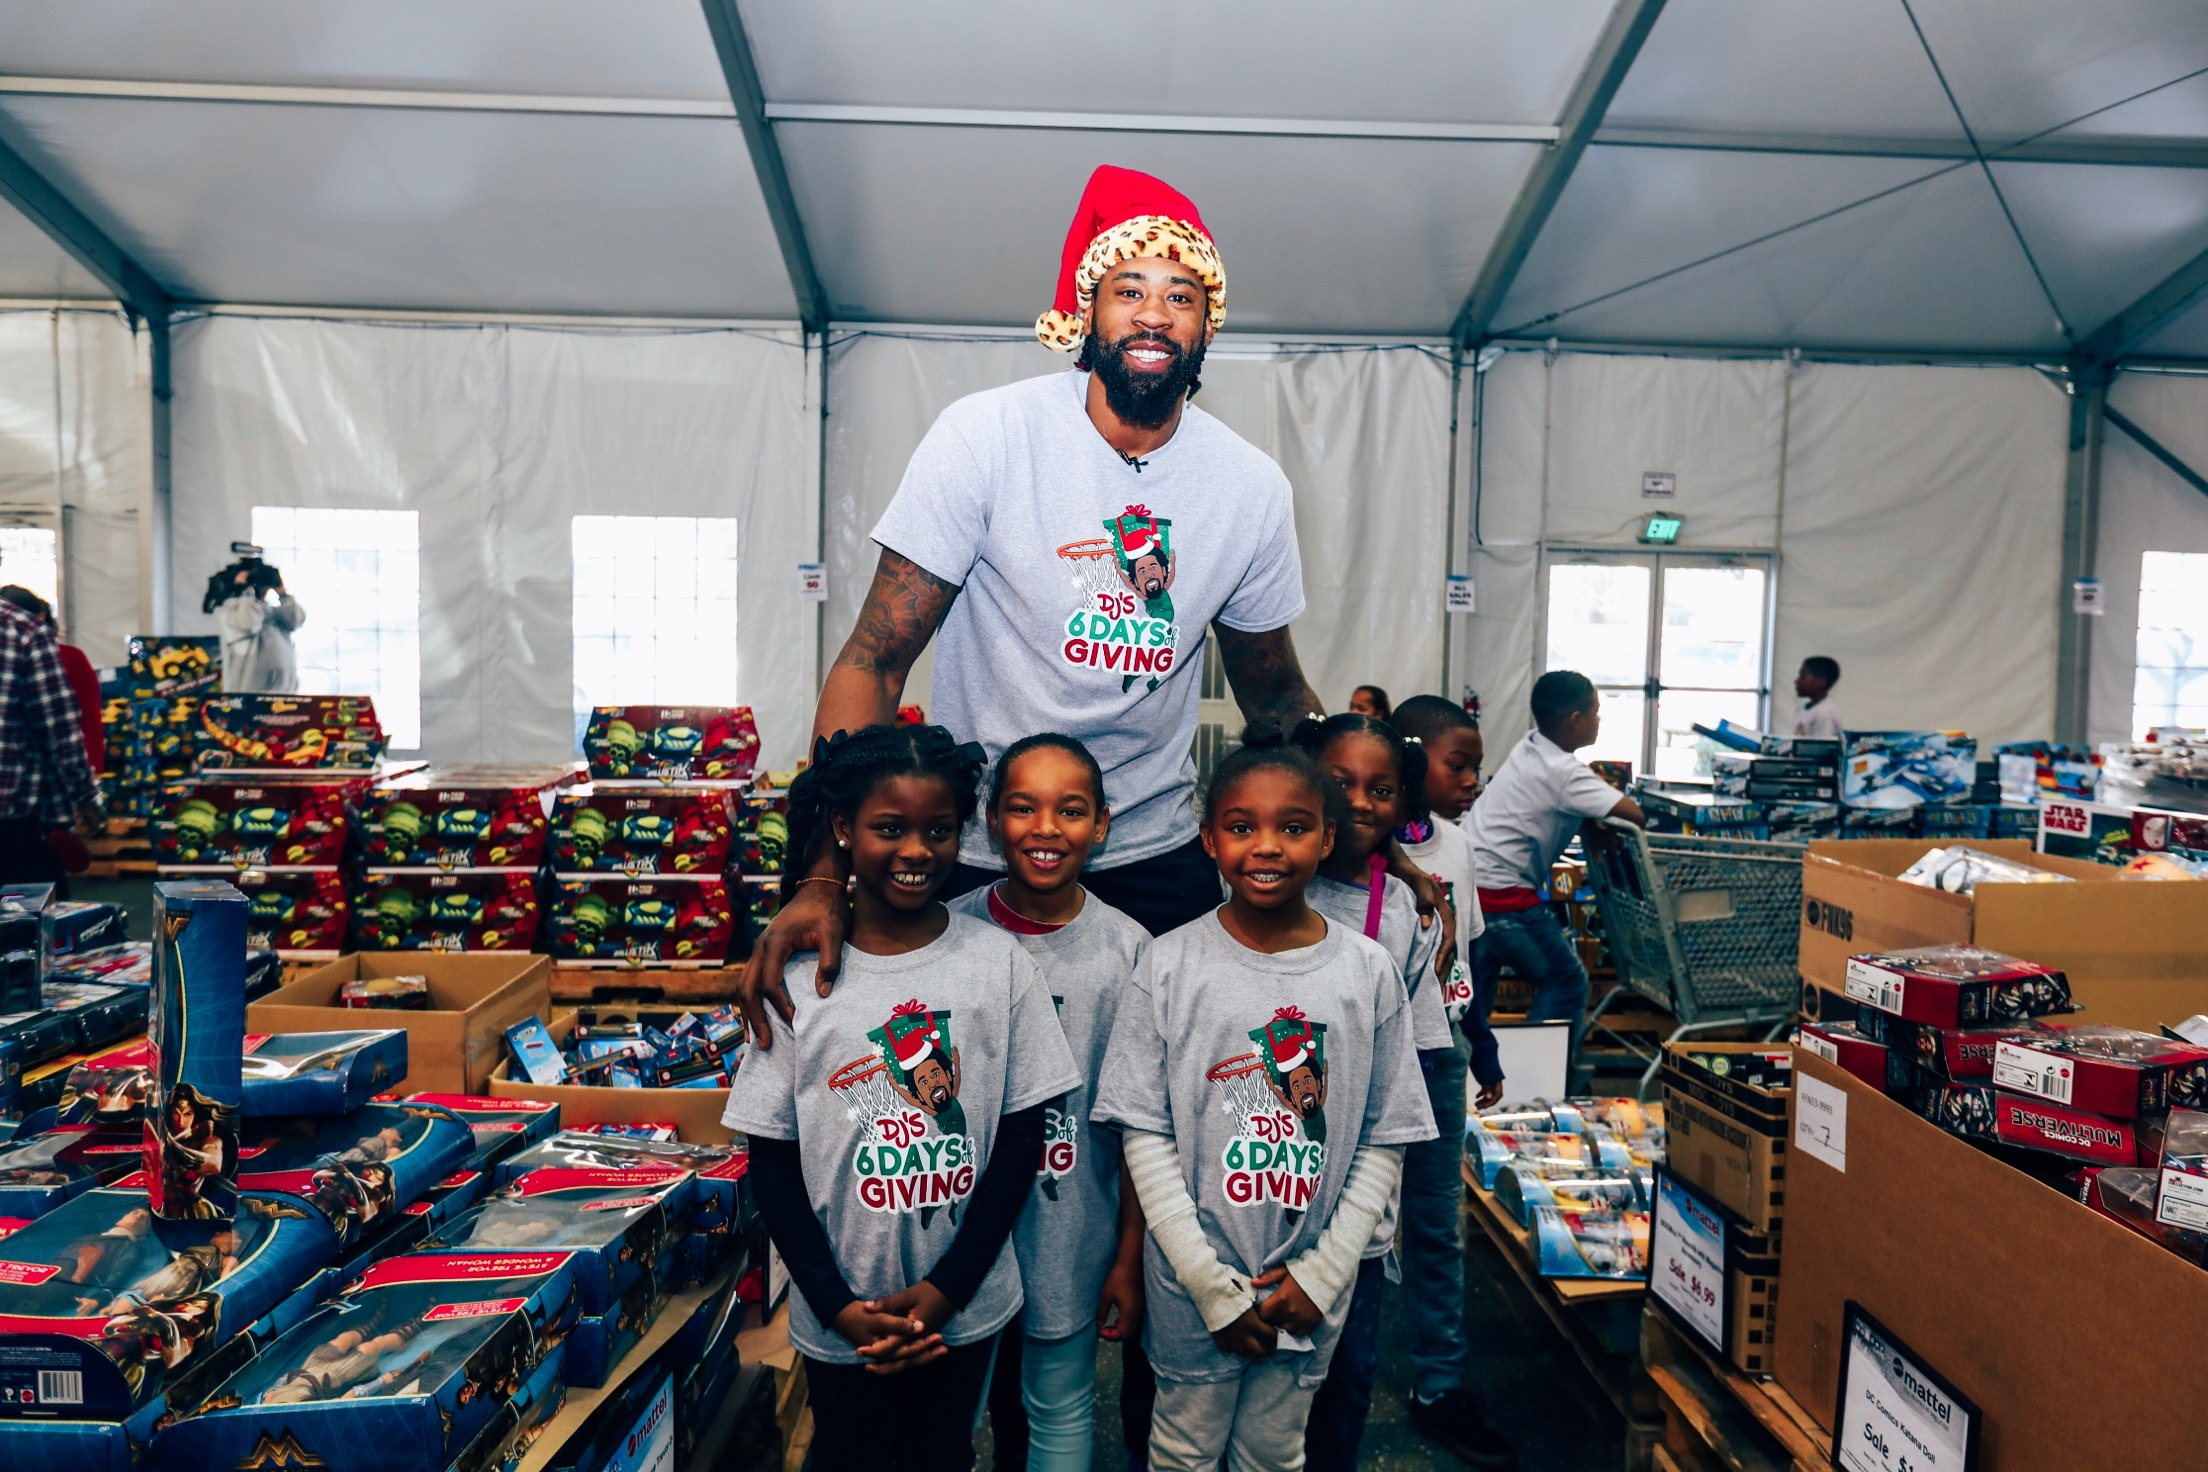 """Day 1 - Shopping spree at MATTEL for 100 kids from the """"Why Can't We Make a Difference Foundation."""